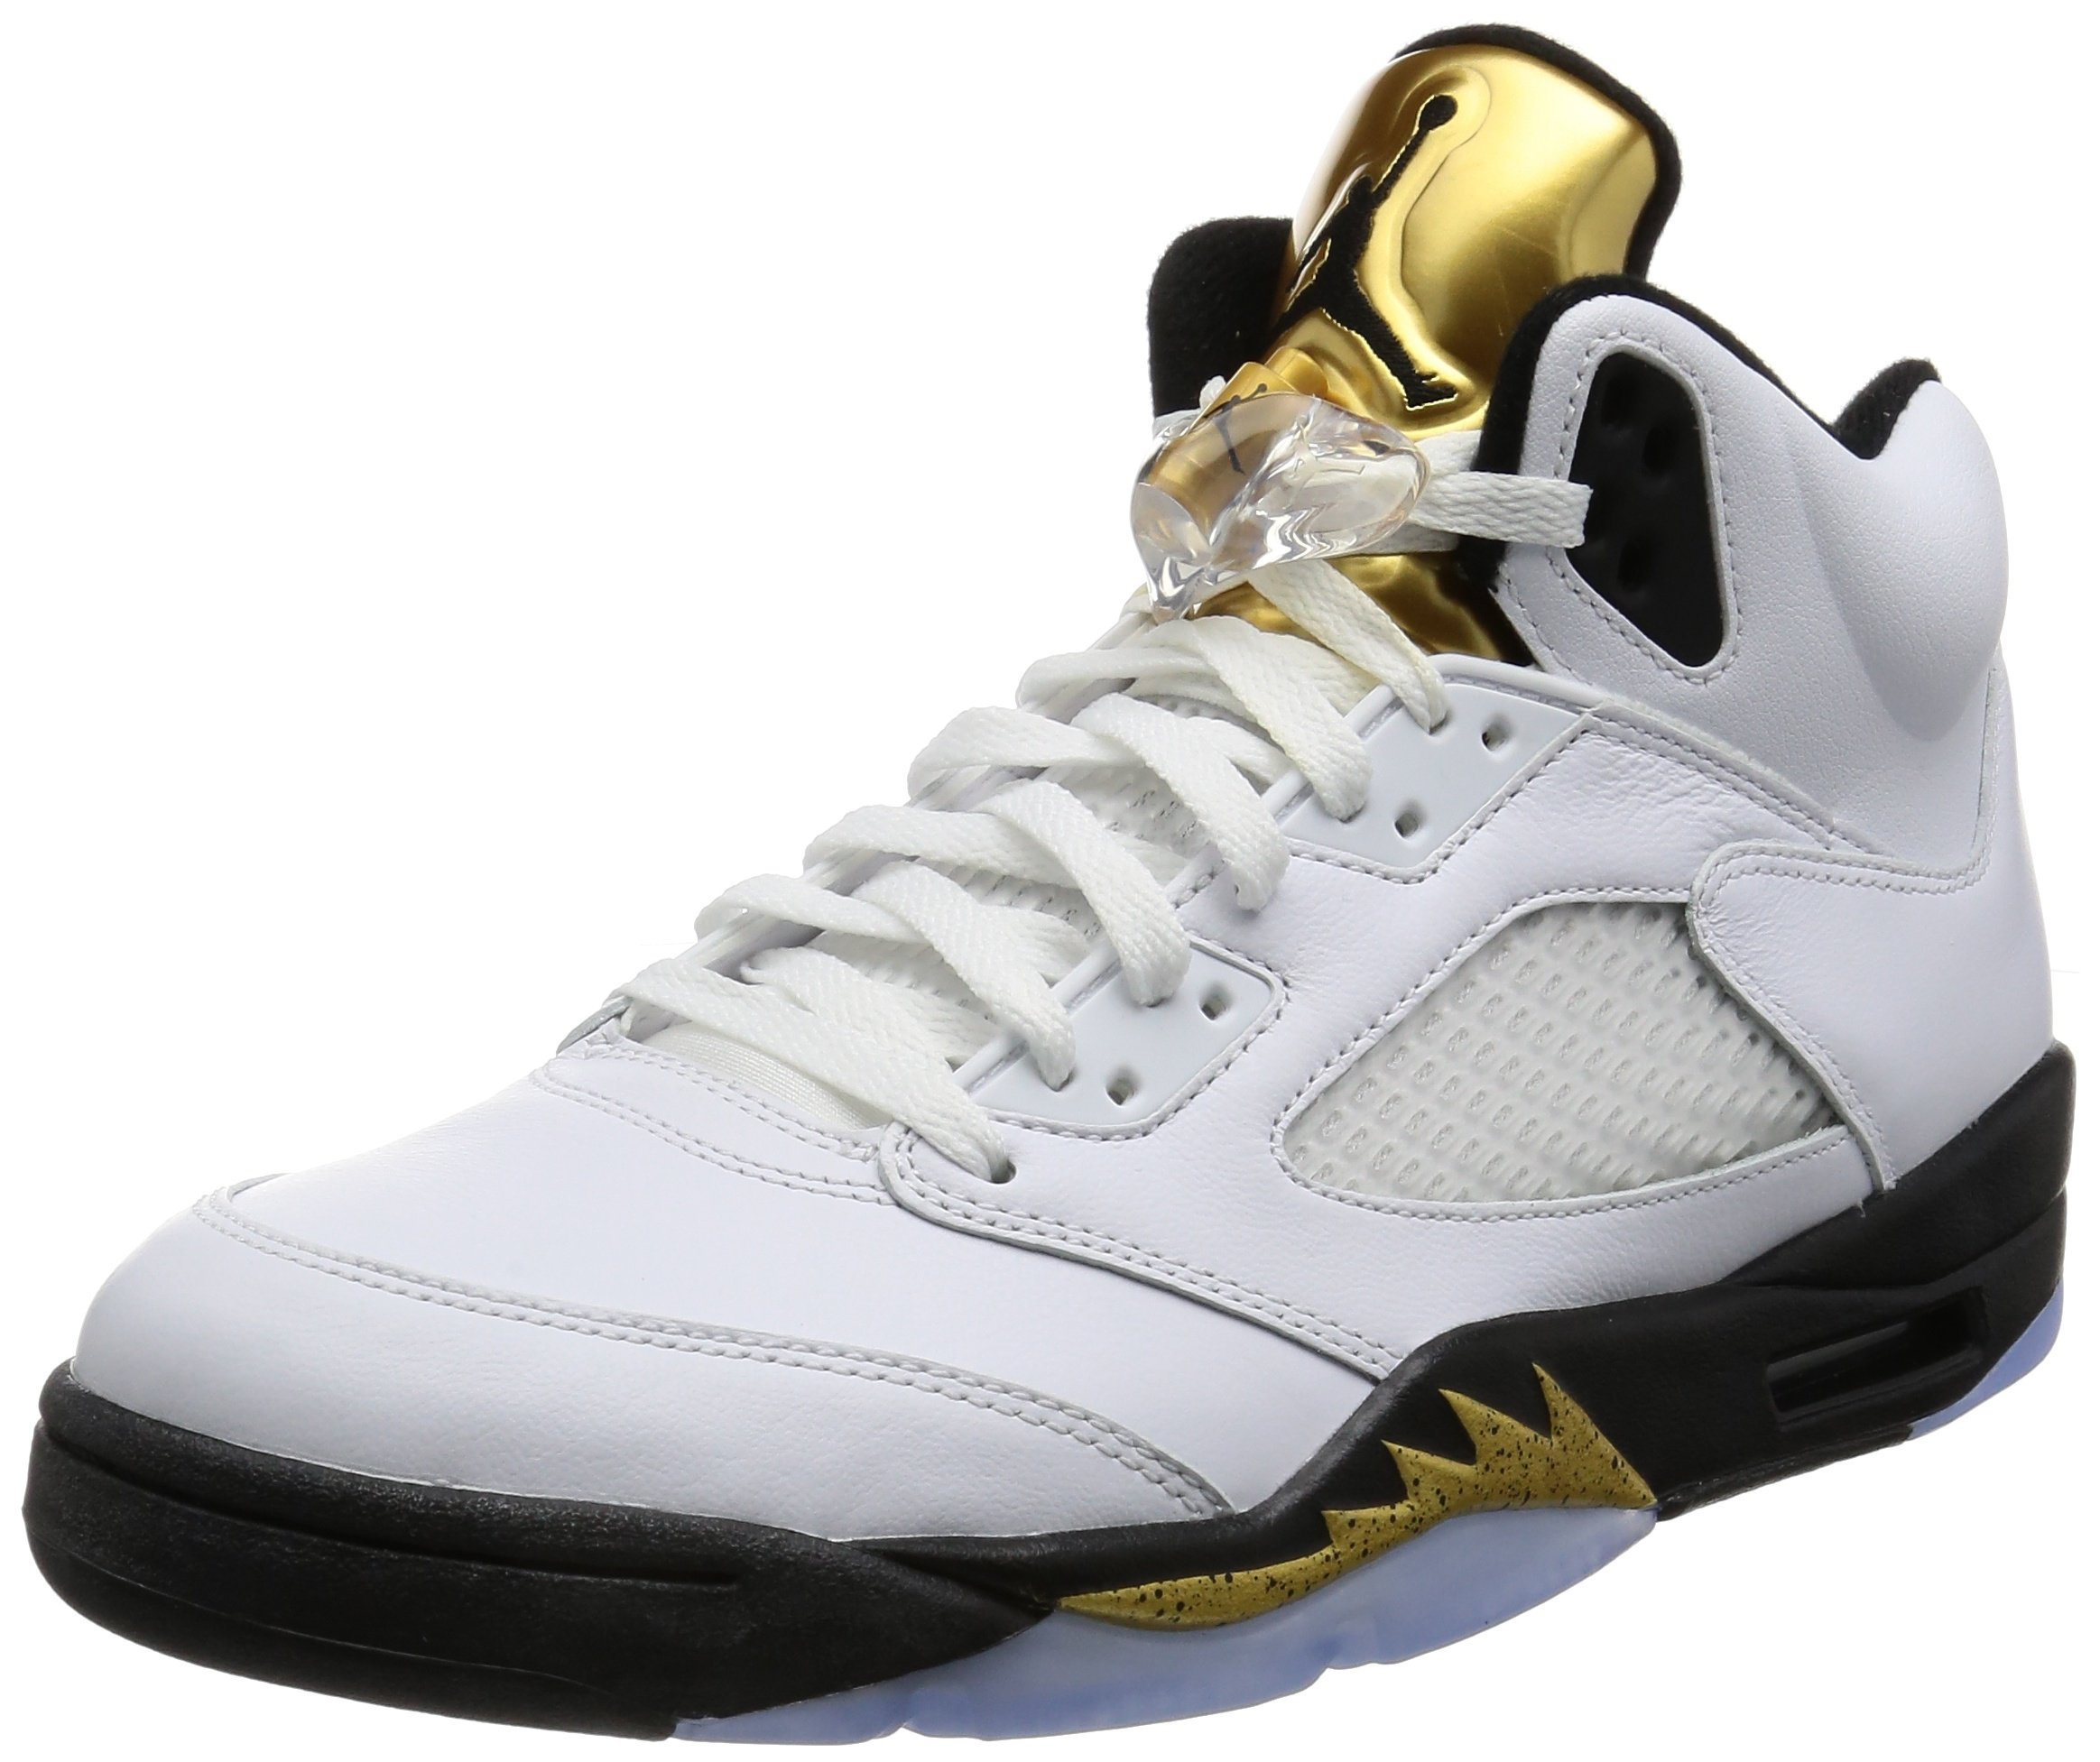 309e93fa0da Galleon - Nike Mens AIR JORDAN 5 RETRO, WHITE/BLACK-MTLC GOLD COIN, 12.5